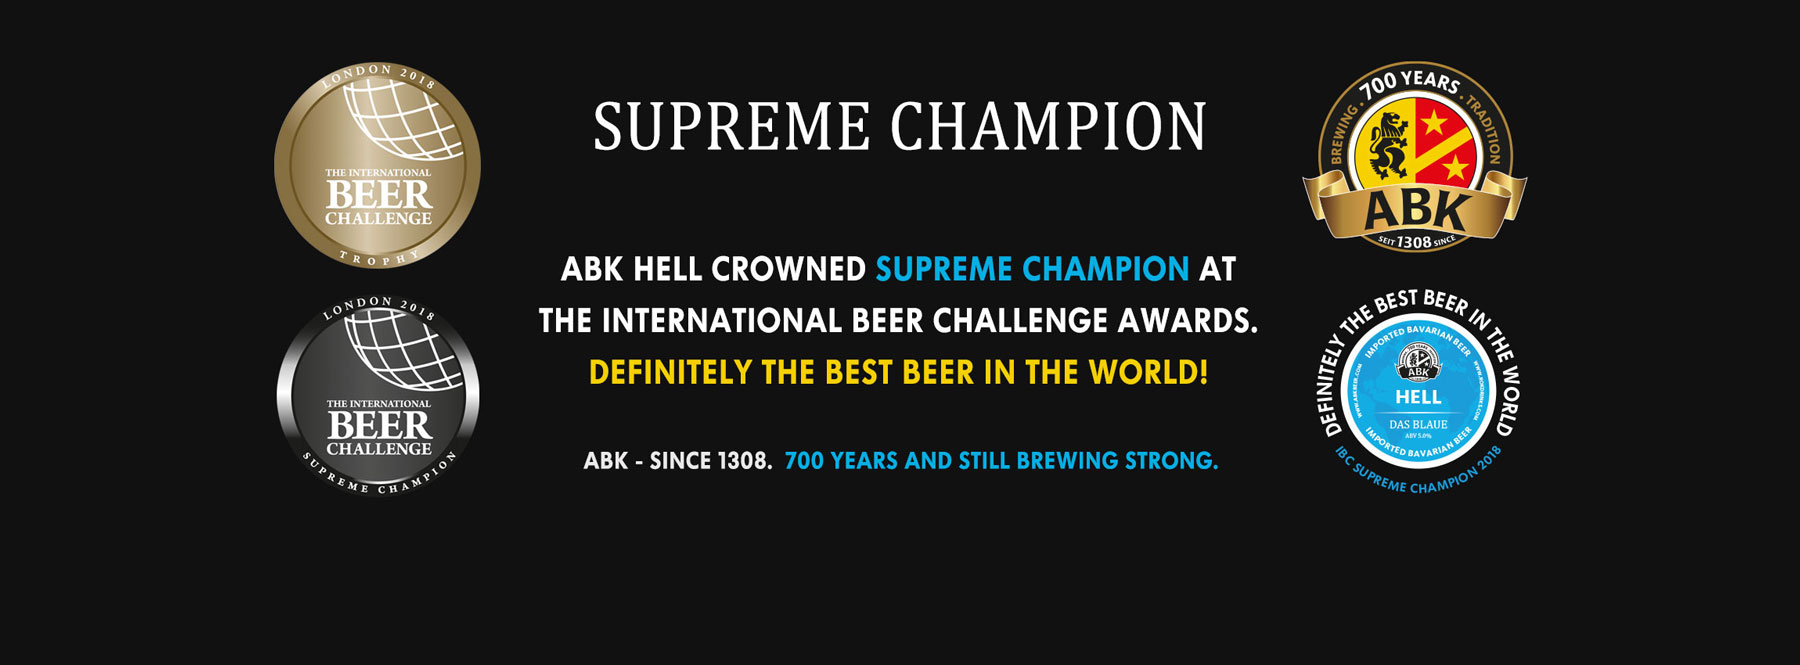 abk supreme champion